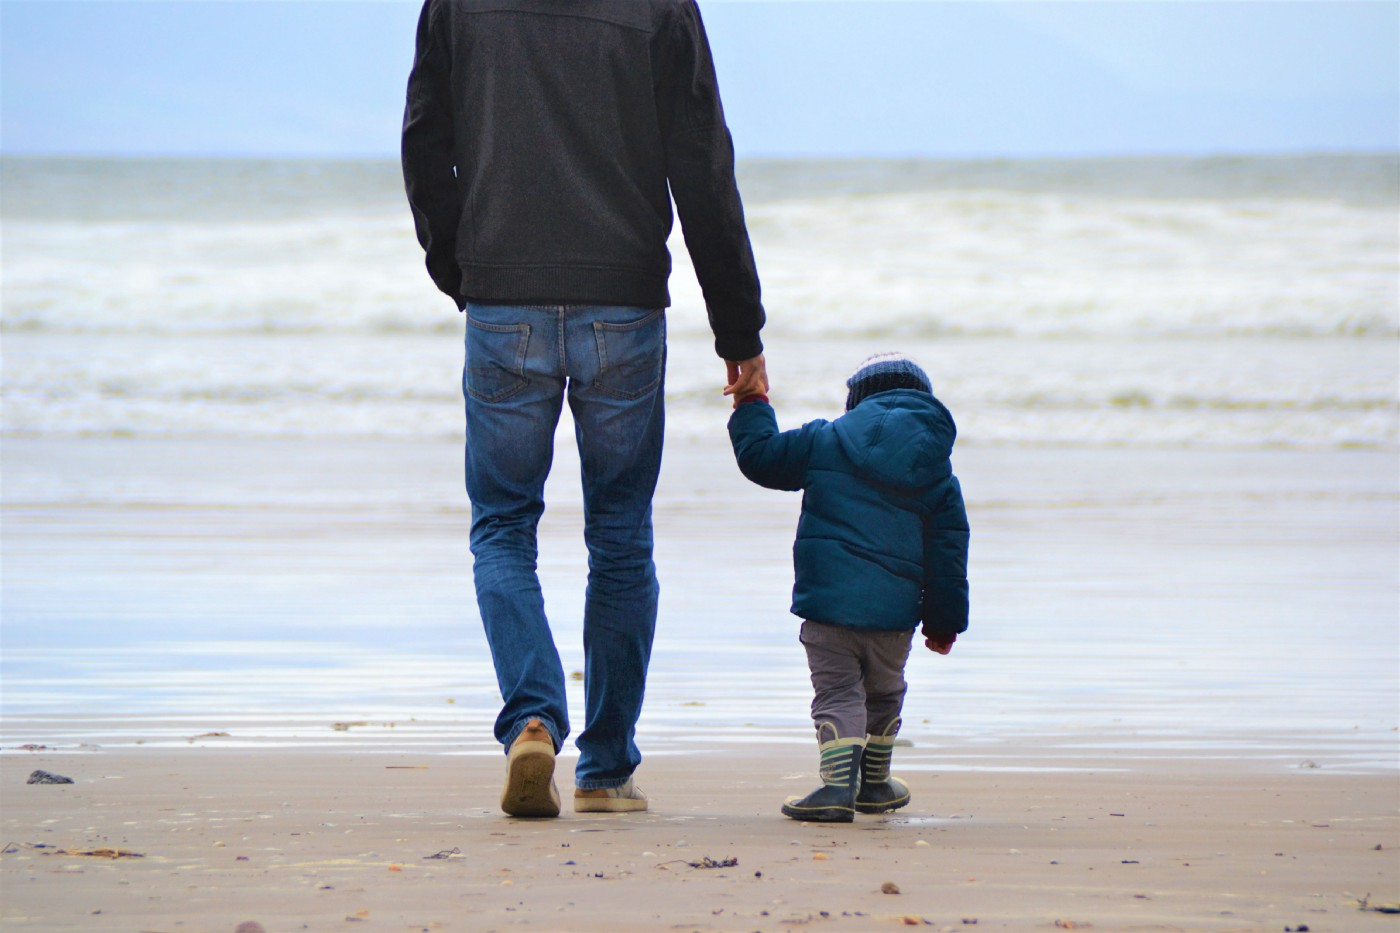 a dad walking hand-in-hand with his son along a beach with waves crashing the shoreline.